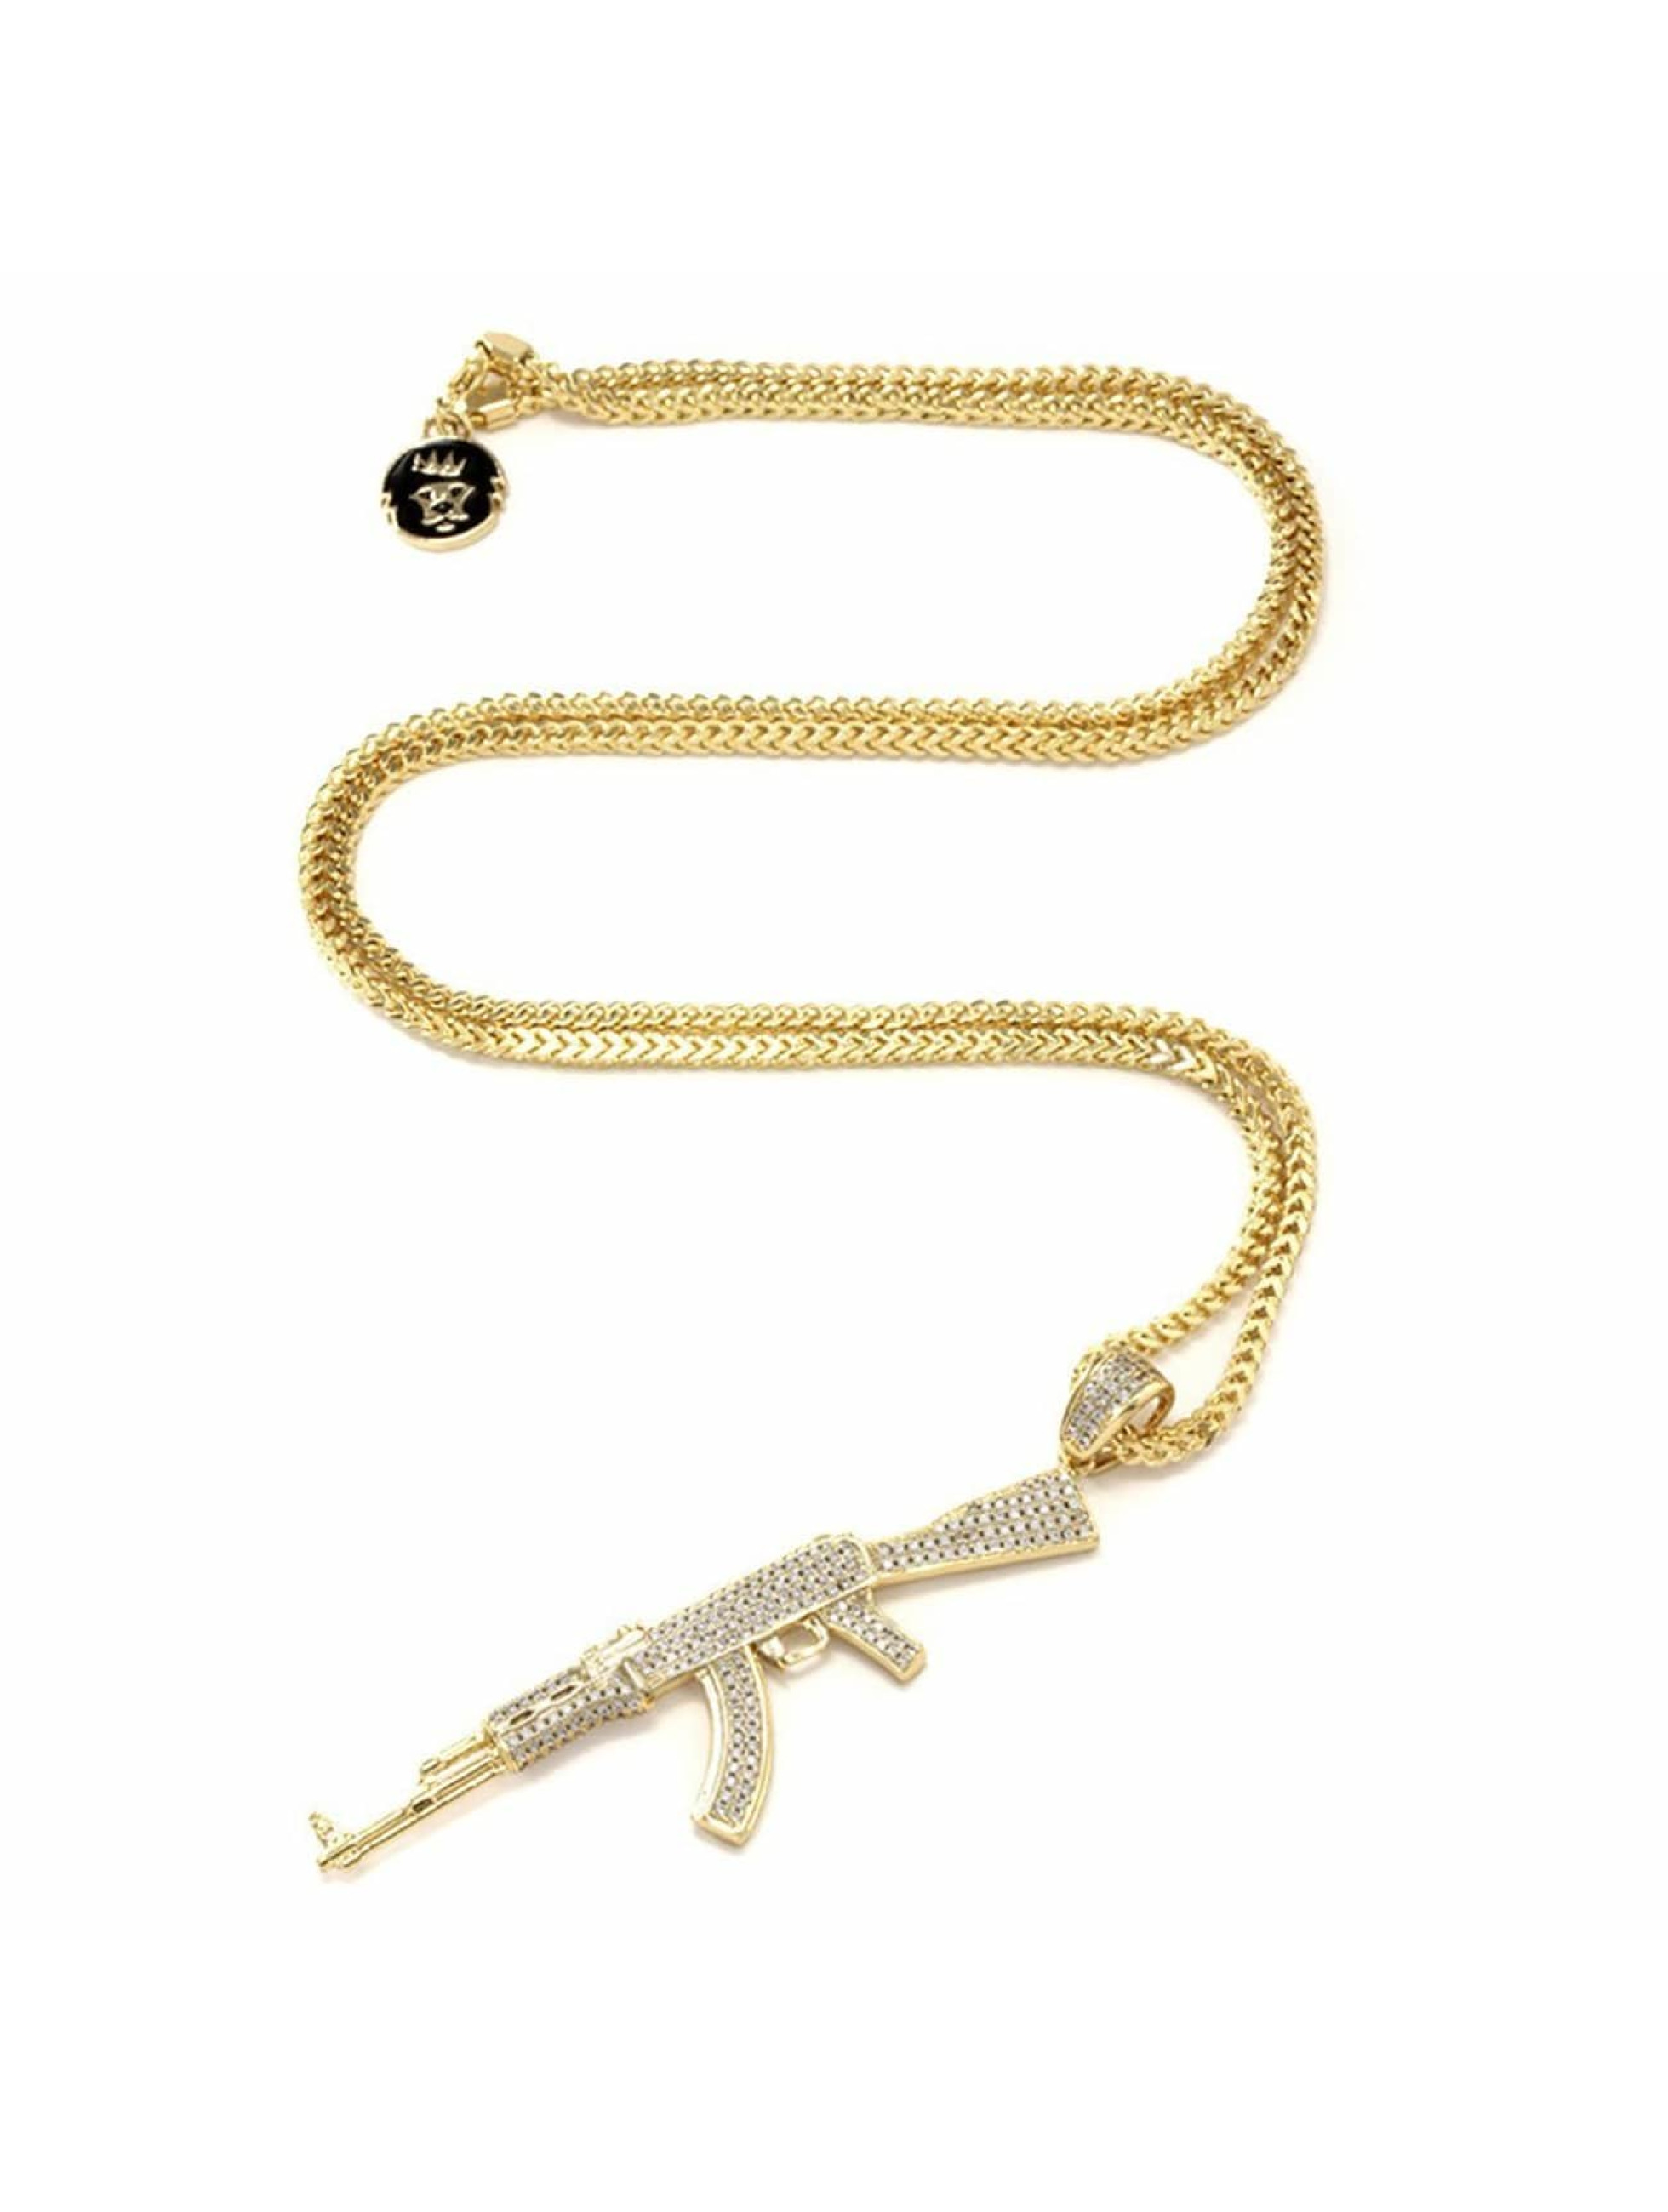 KING ICE ketting Studded AK-47 goud